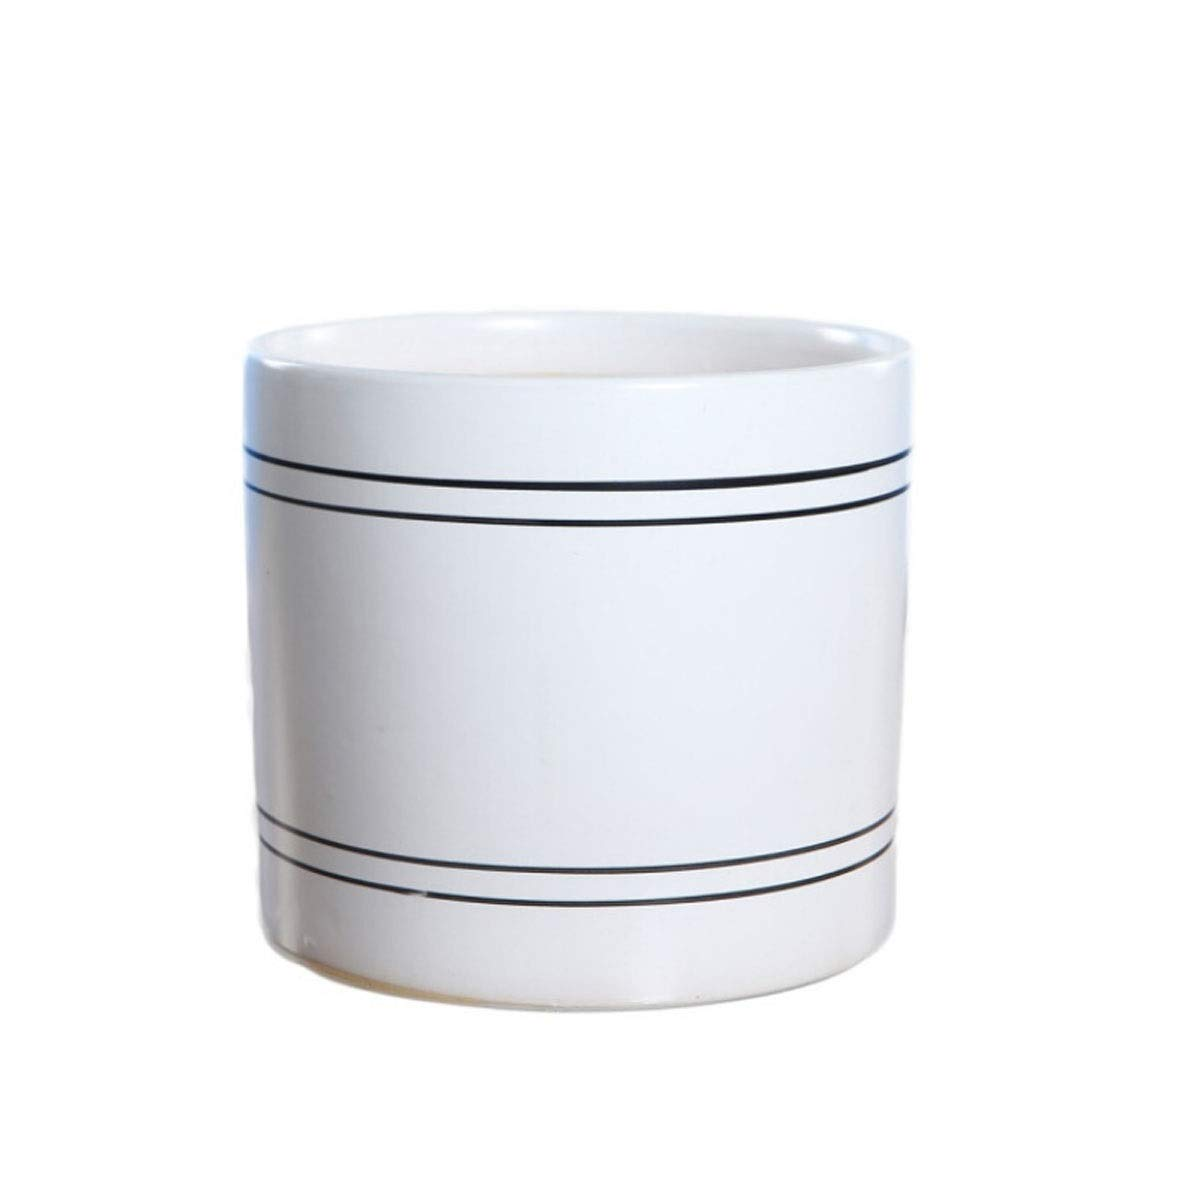 HUIJUNWENTI Ceramic Flower Pot, Fleshy Flower Pot, Ceramic Large Creative Potted Flower Pot, Nordic Style Cylindrical Breathable Office Household Pot Ceramic (Color : White, Size : Extra Large) by HUIJUNWENTI